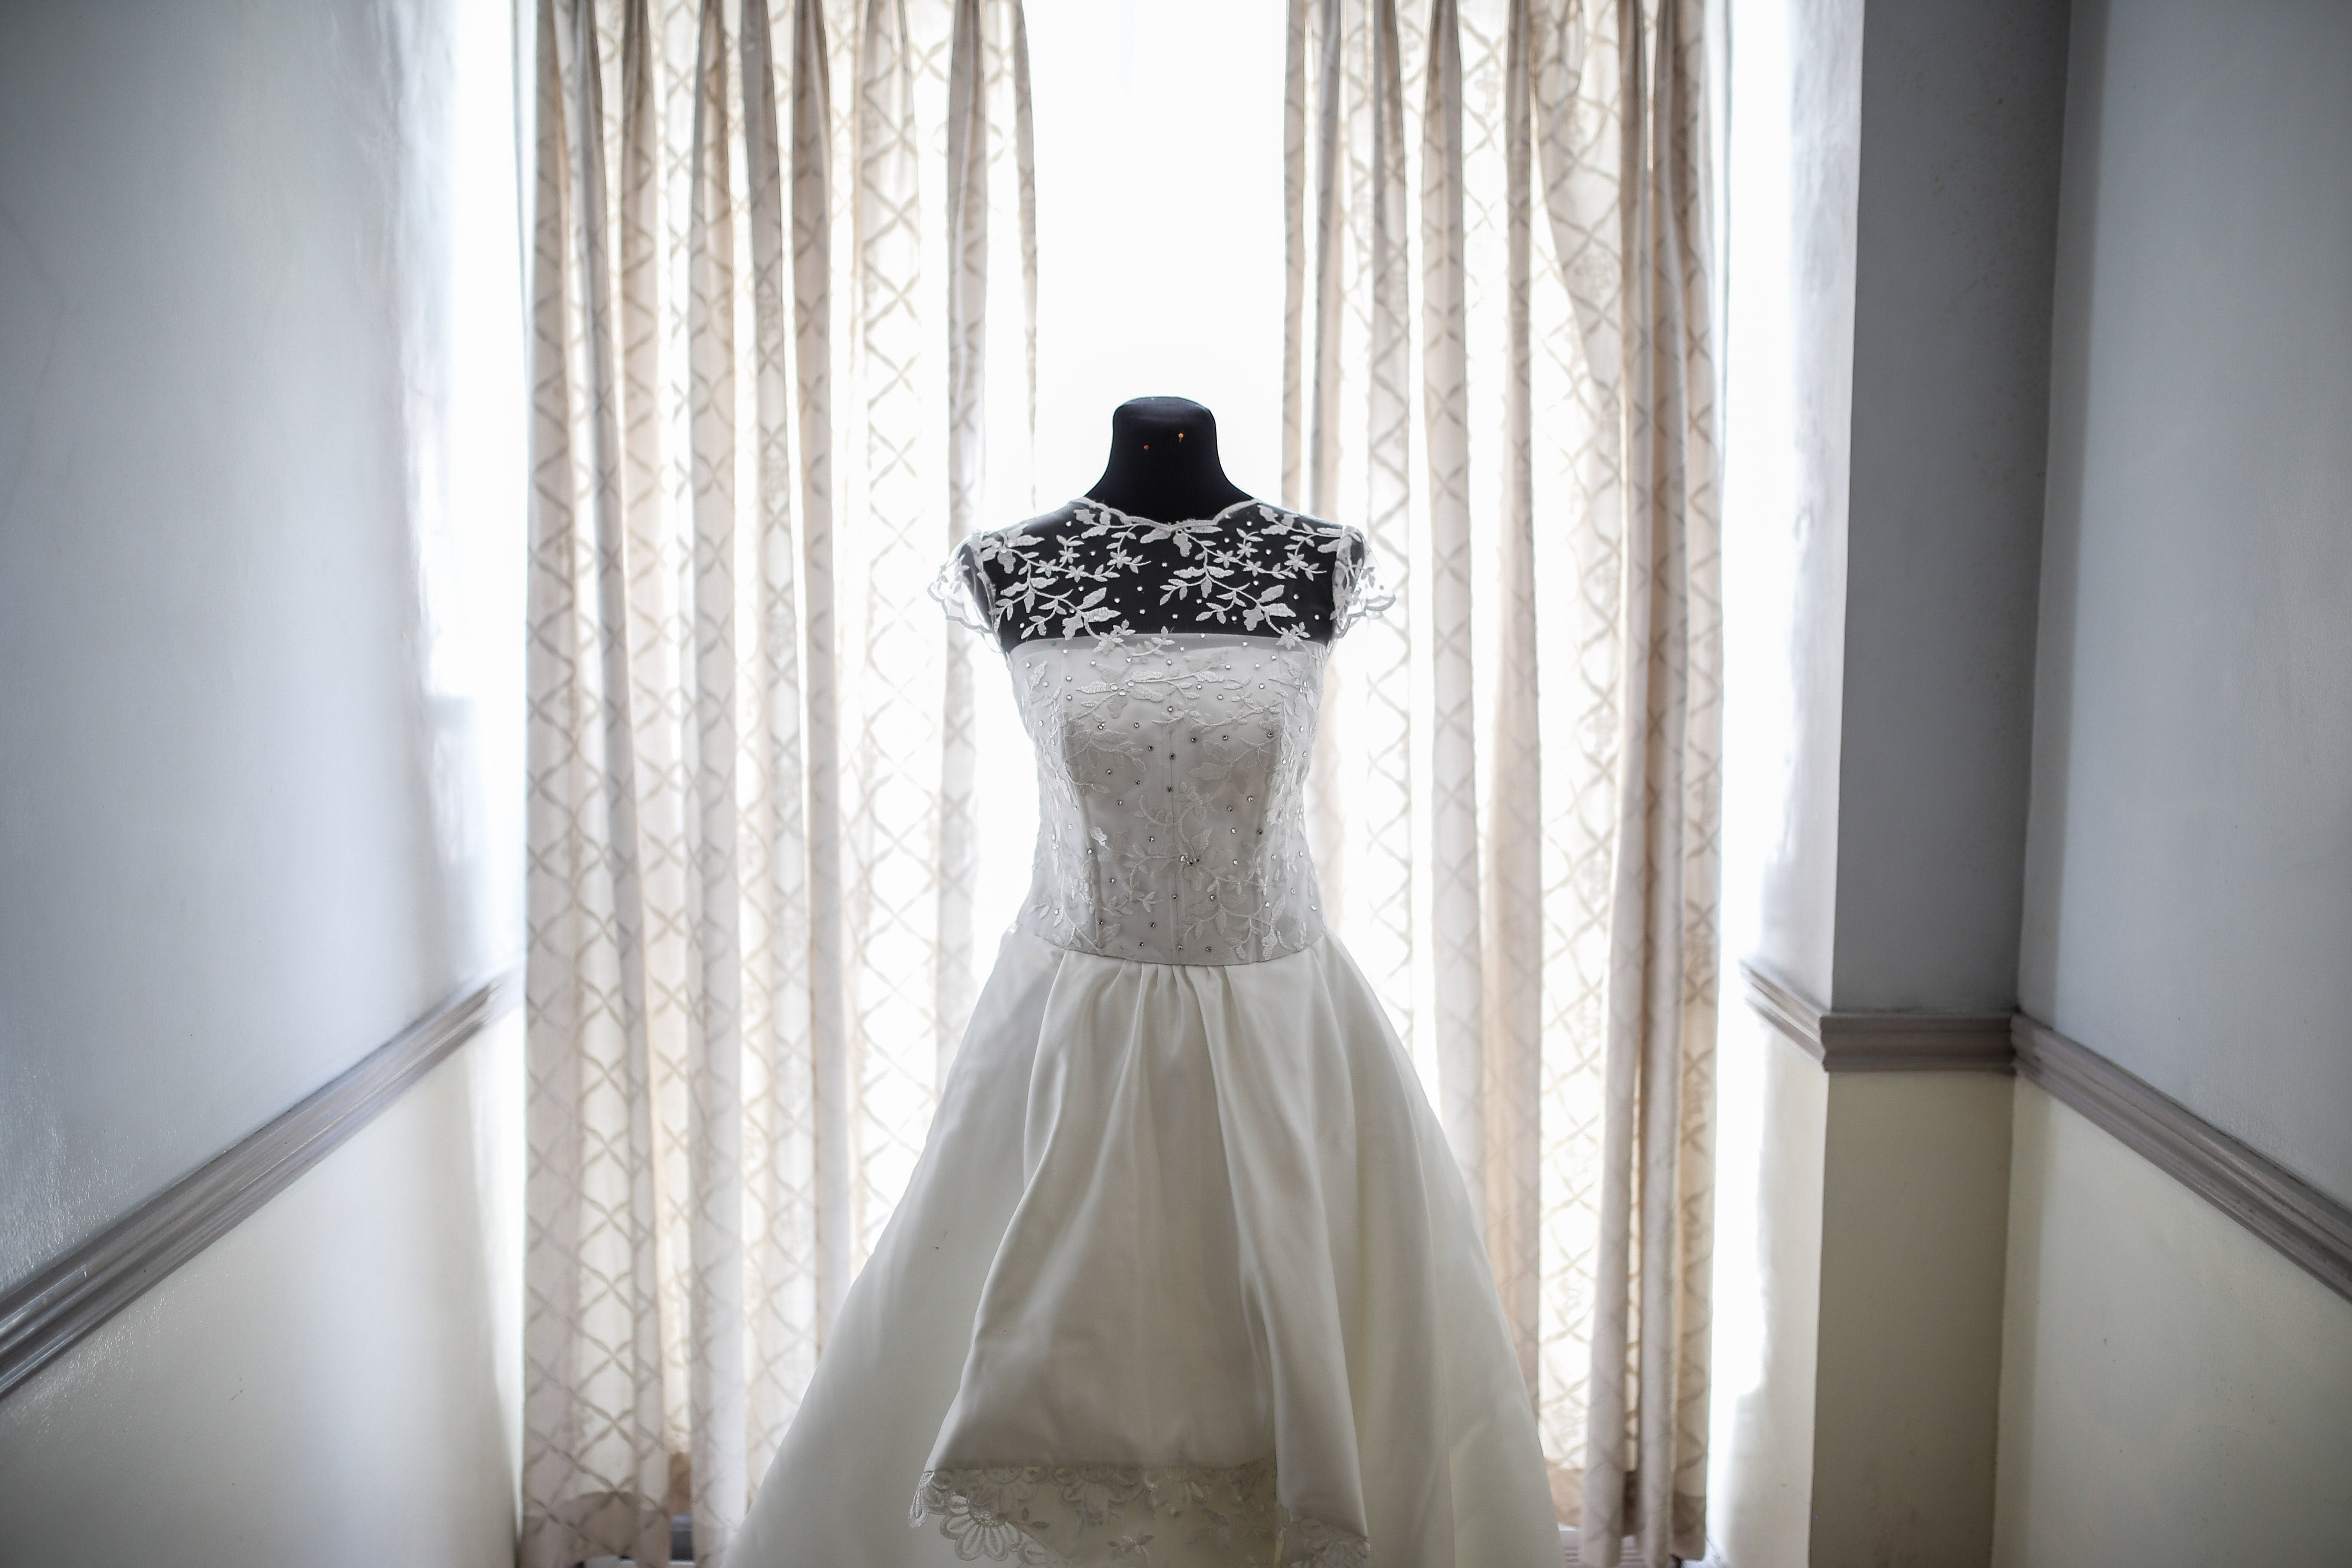 Photo of a Bridal Gown